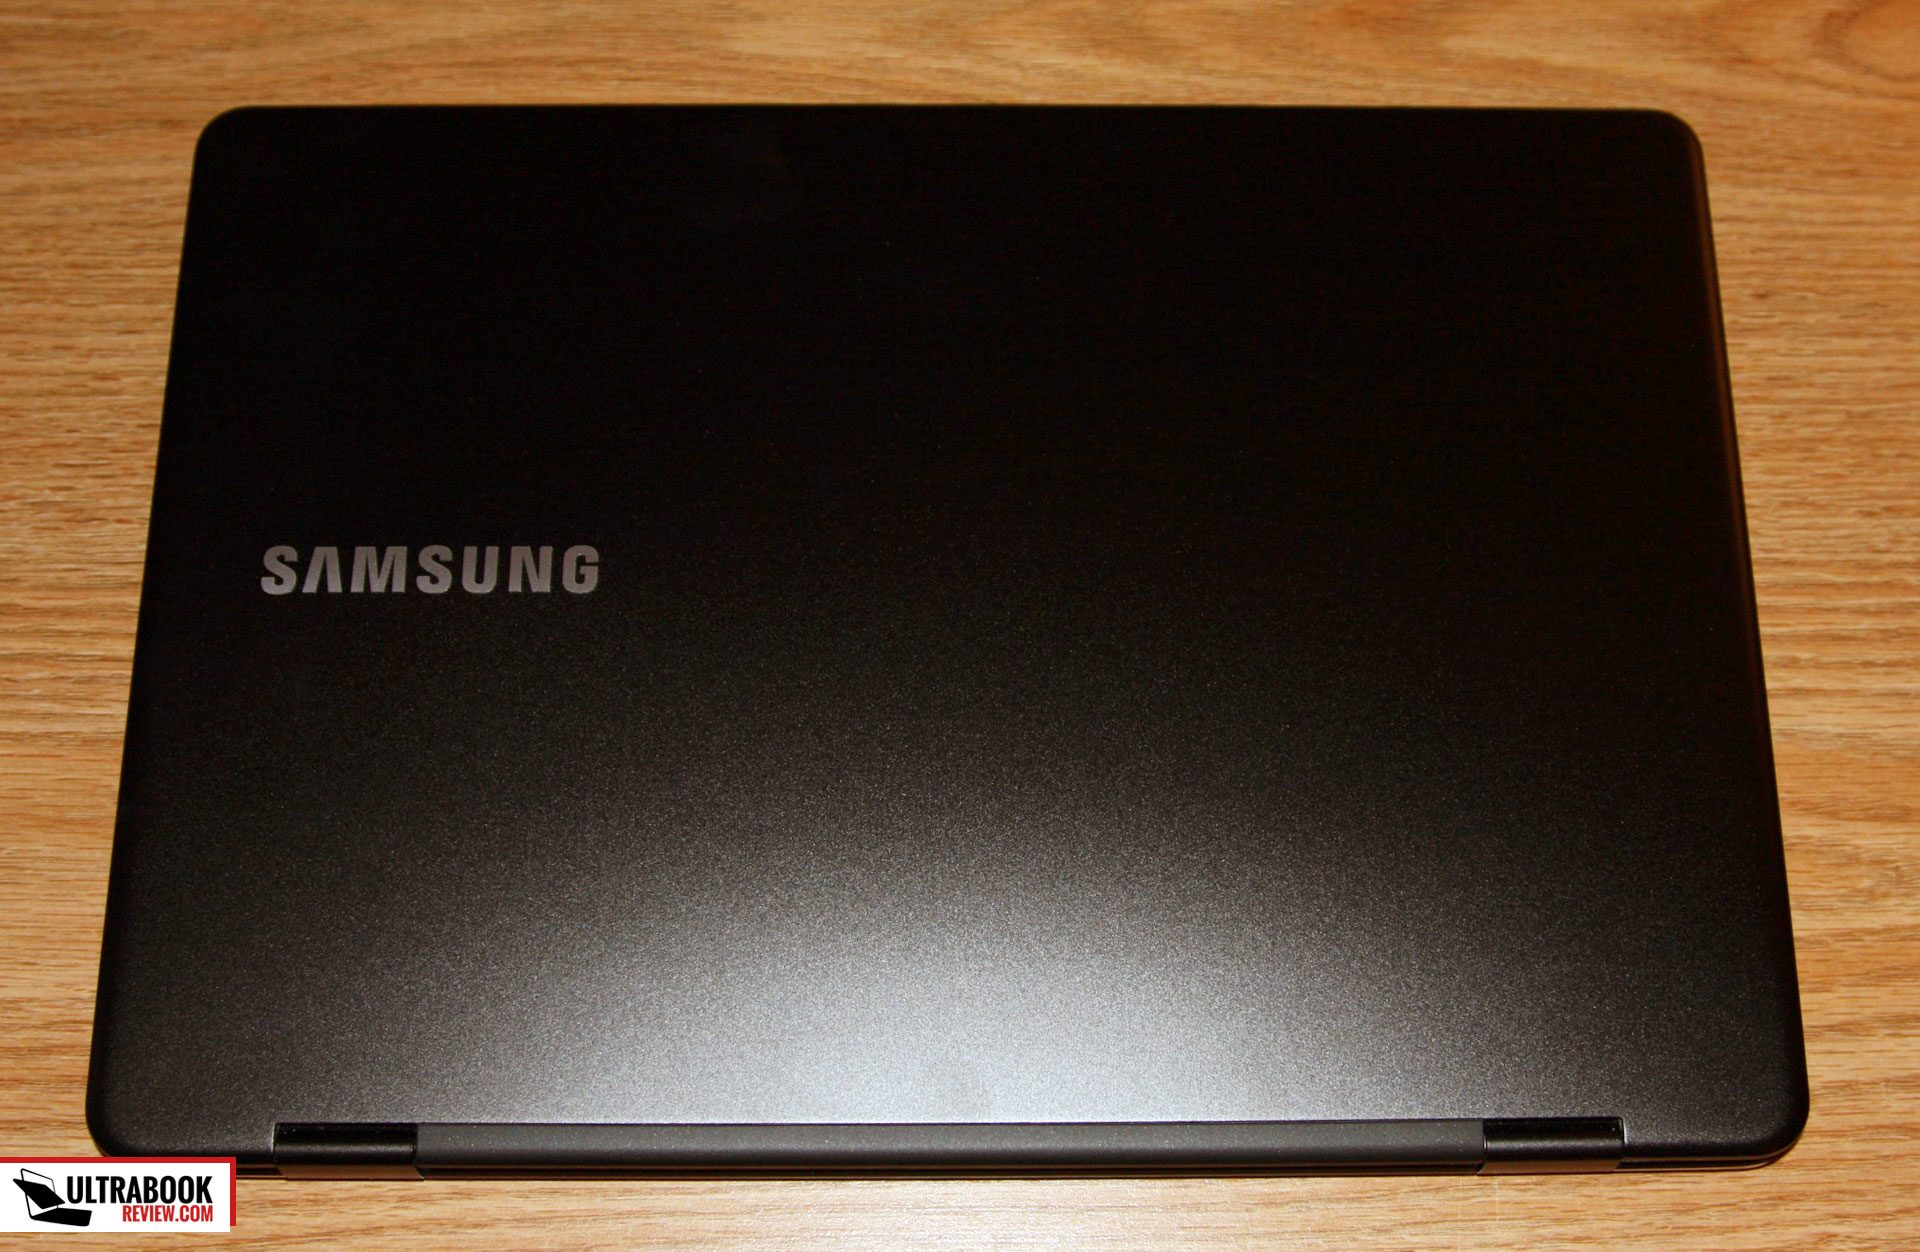 samsung ativ book 9 spin - case finish